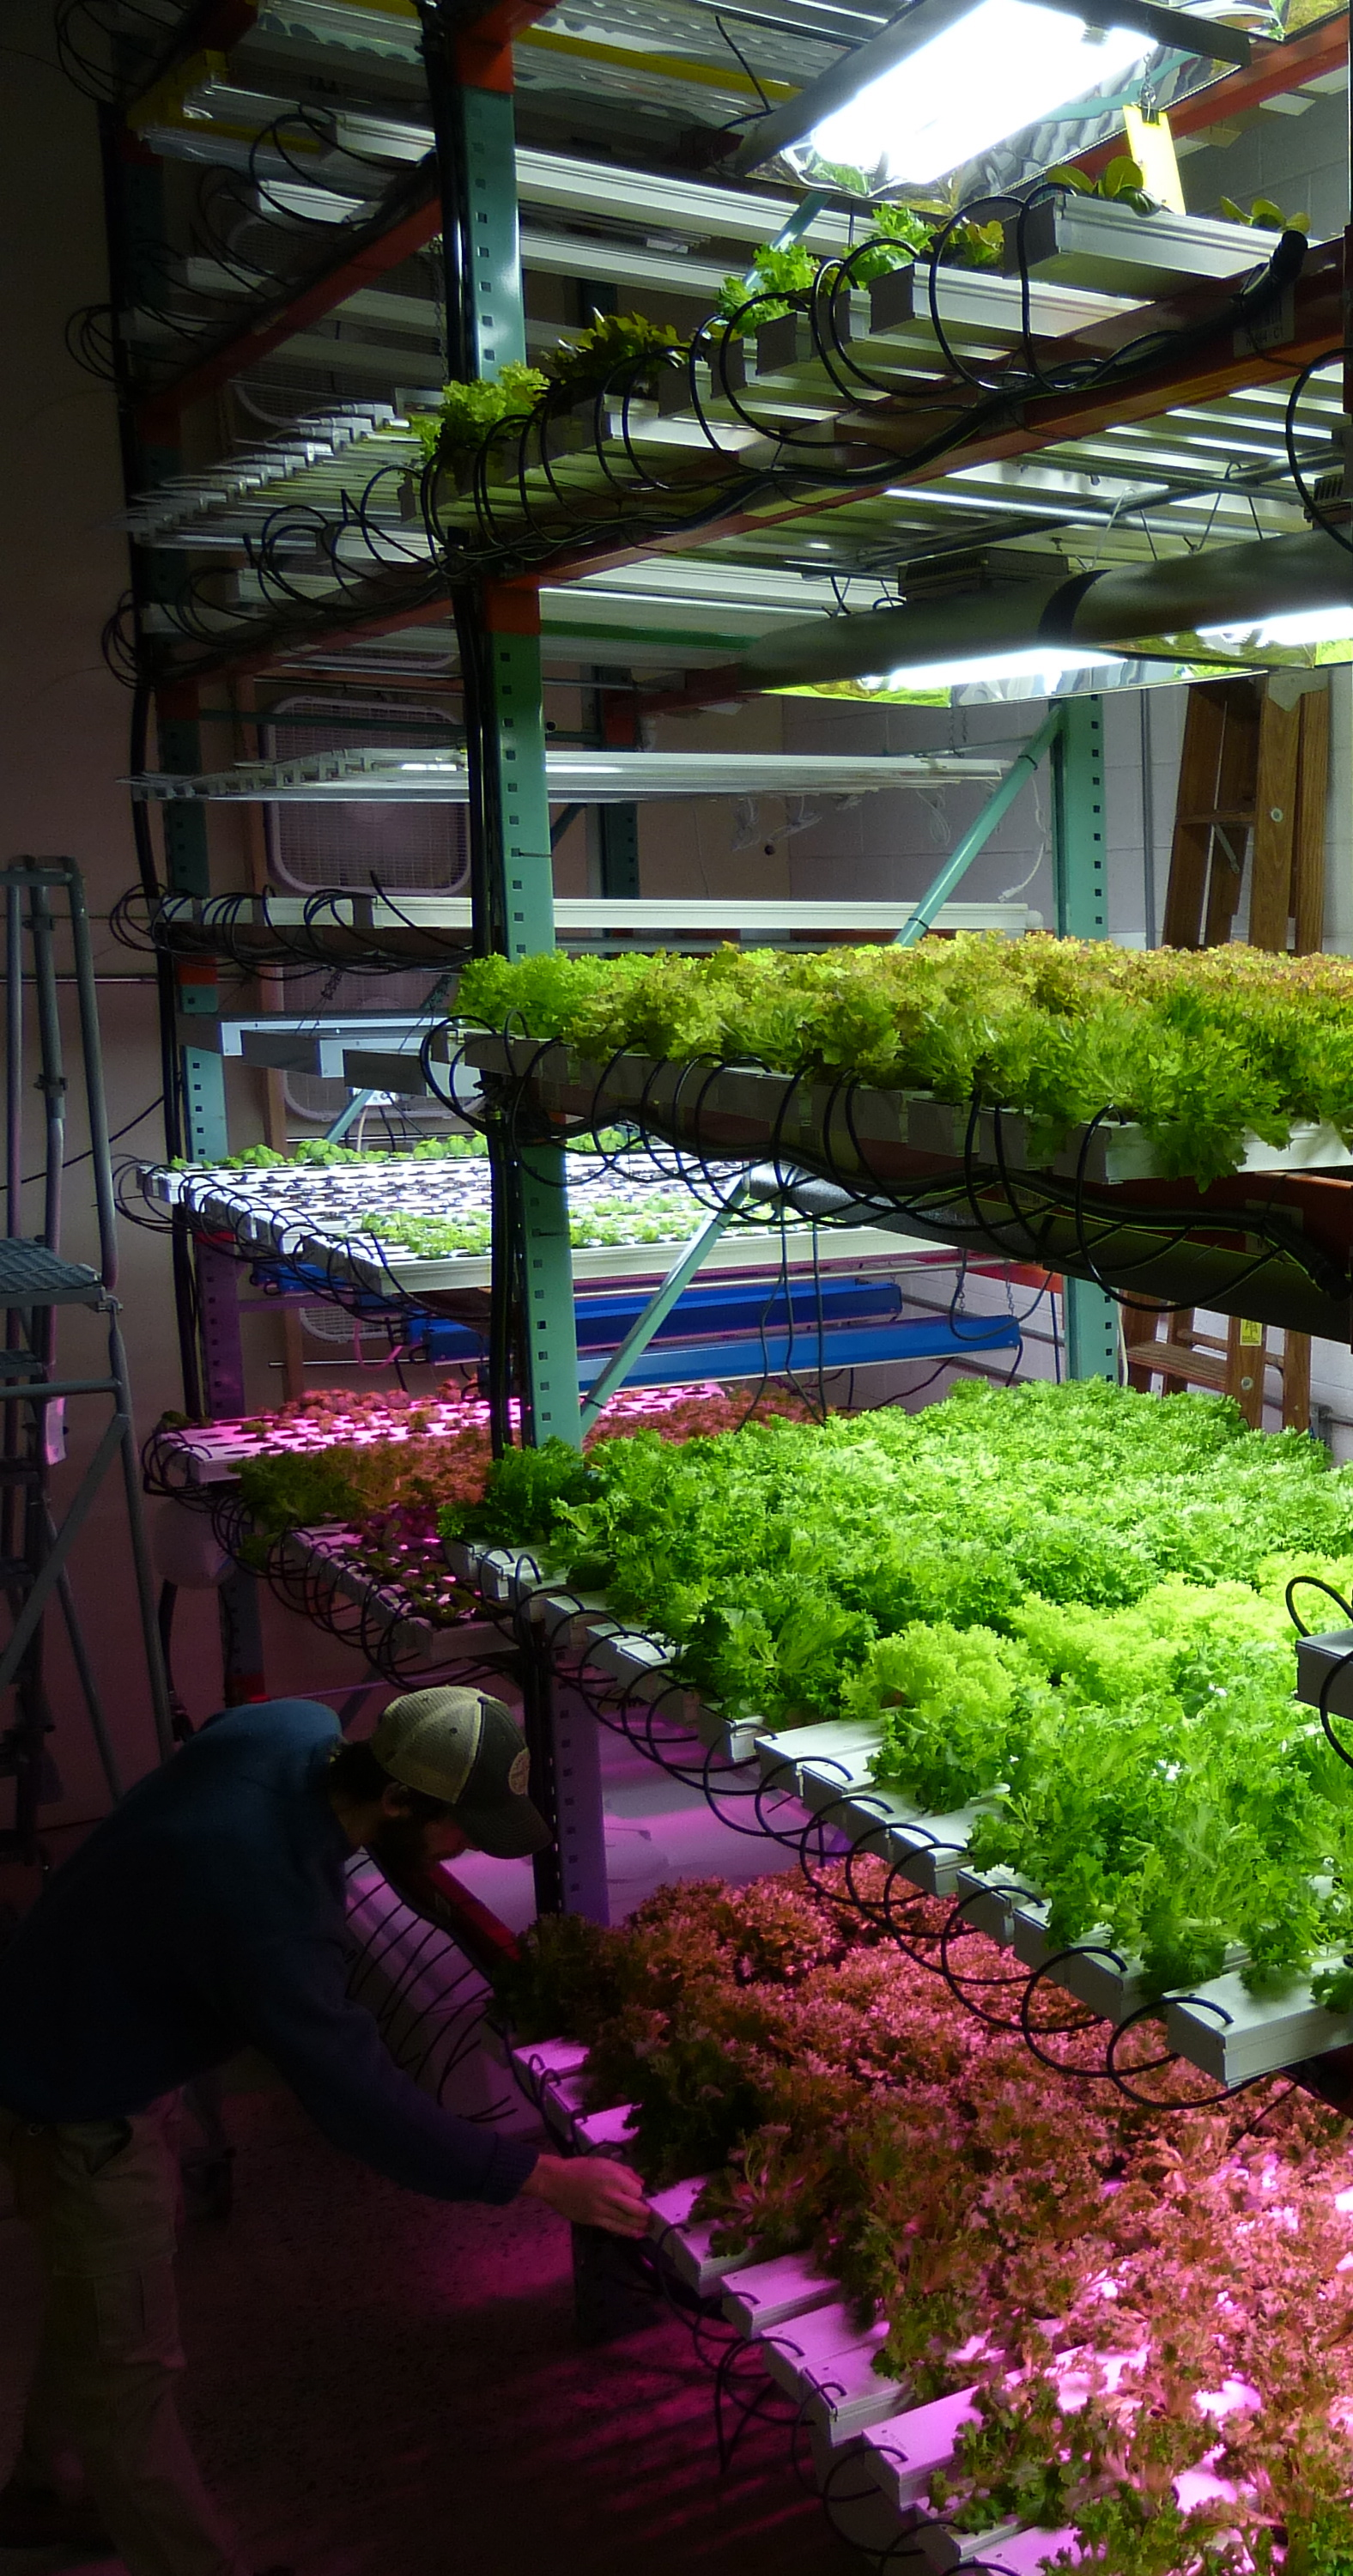 Vertical Hydroponics Growing Higher Thinking Grozinegrozine